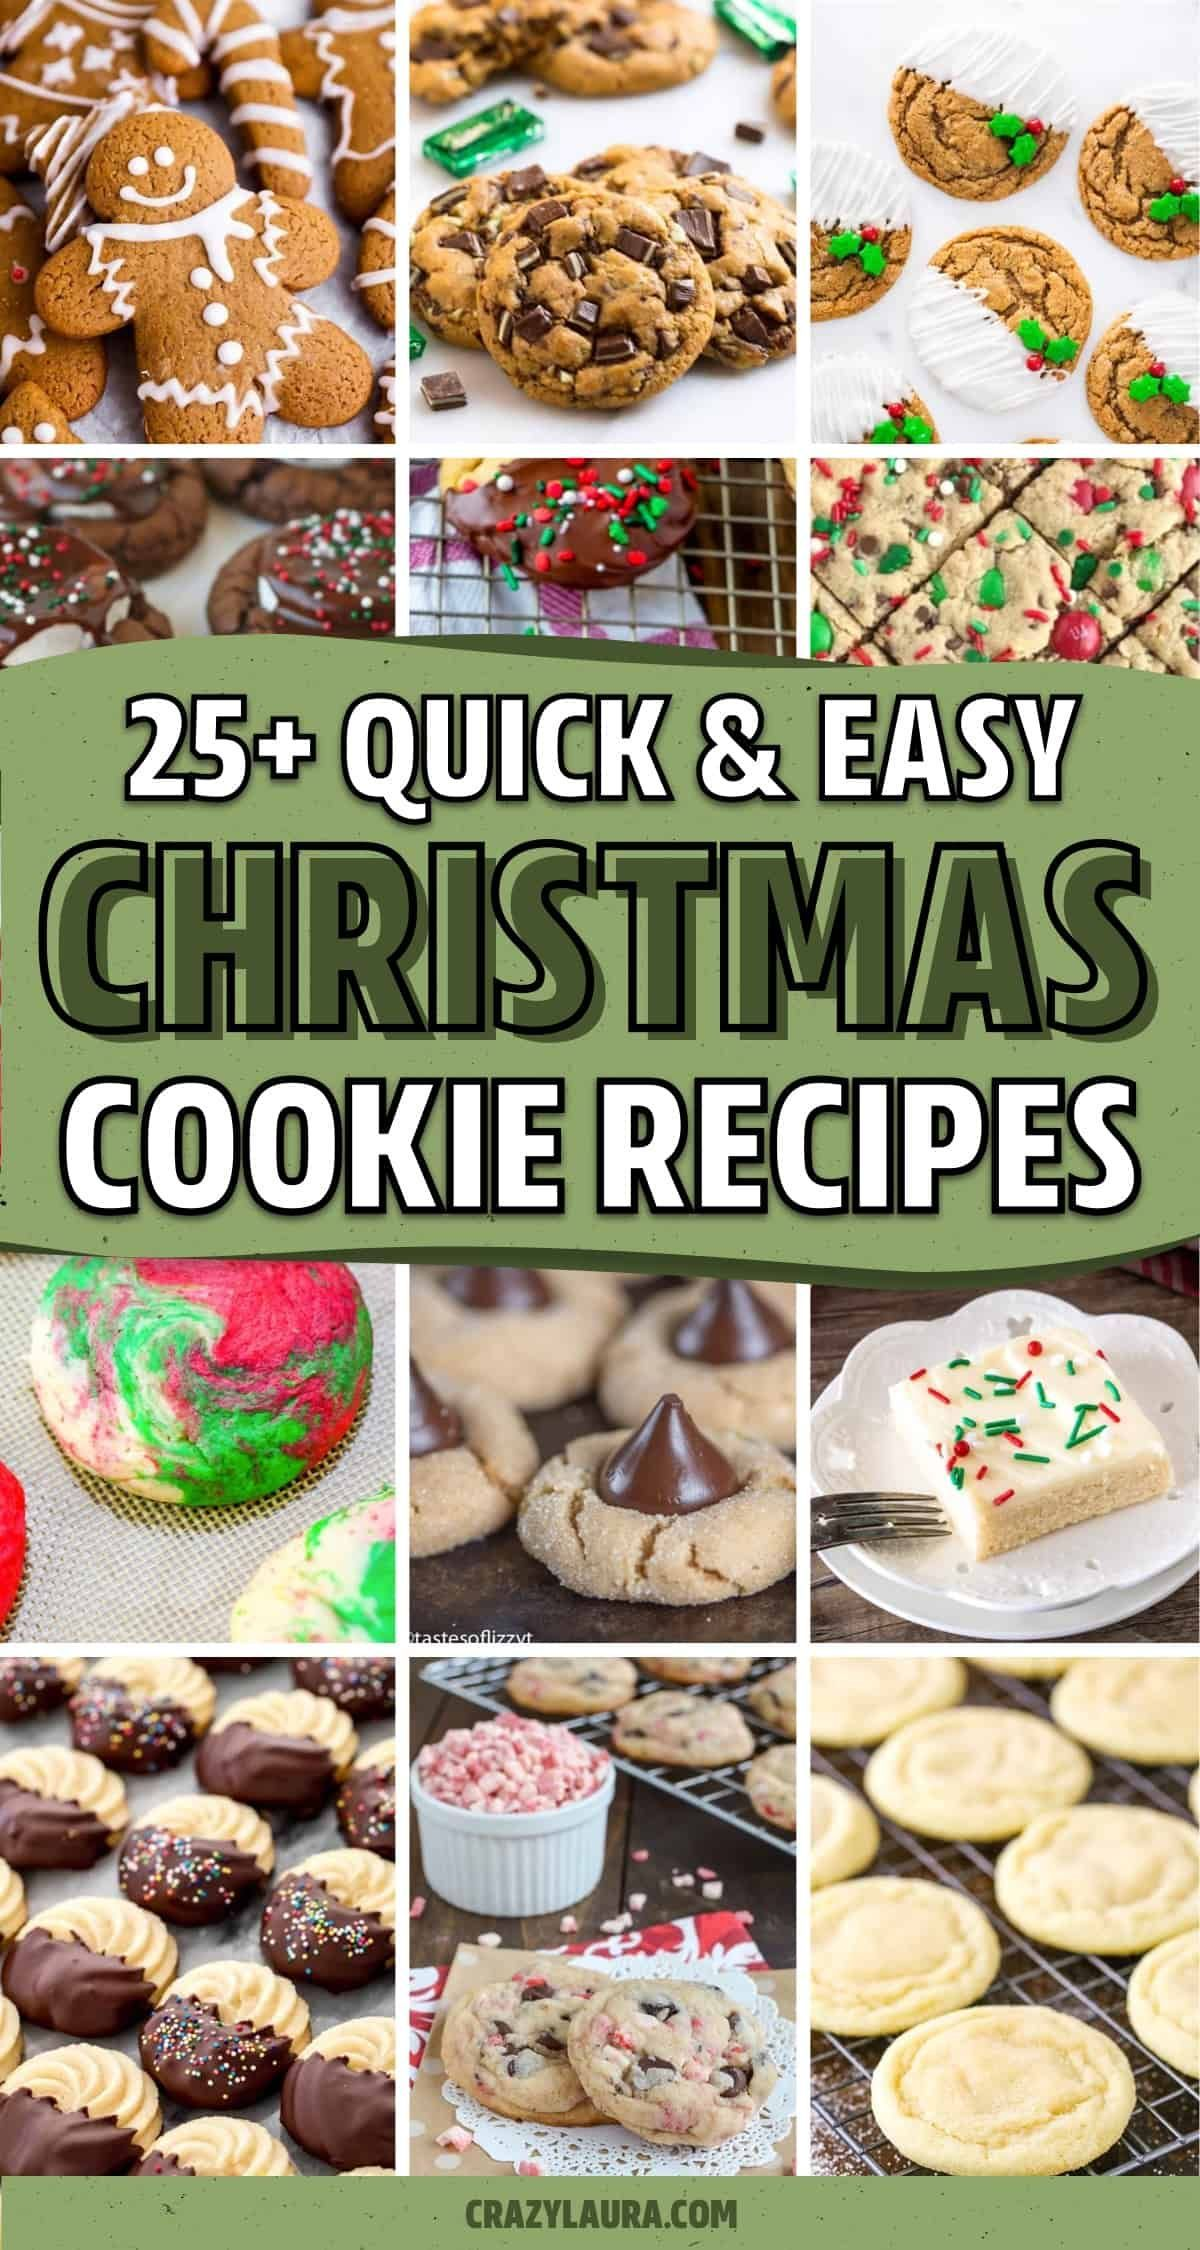 Christmas Cookies Recipes 2021 25 Best Christmas Cookie Recipes For 2021 Crazy Laura Easy Christmas Cookie Recipes Cookies Recipes Christmas Cookie Recipes